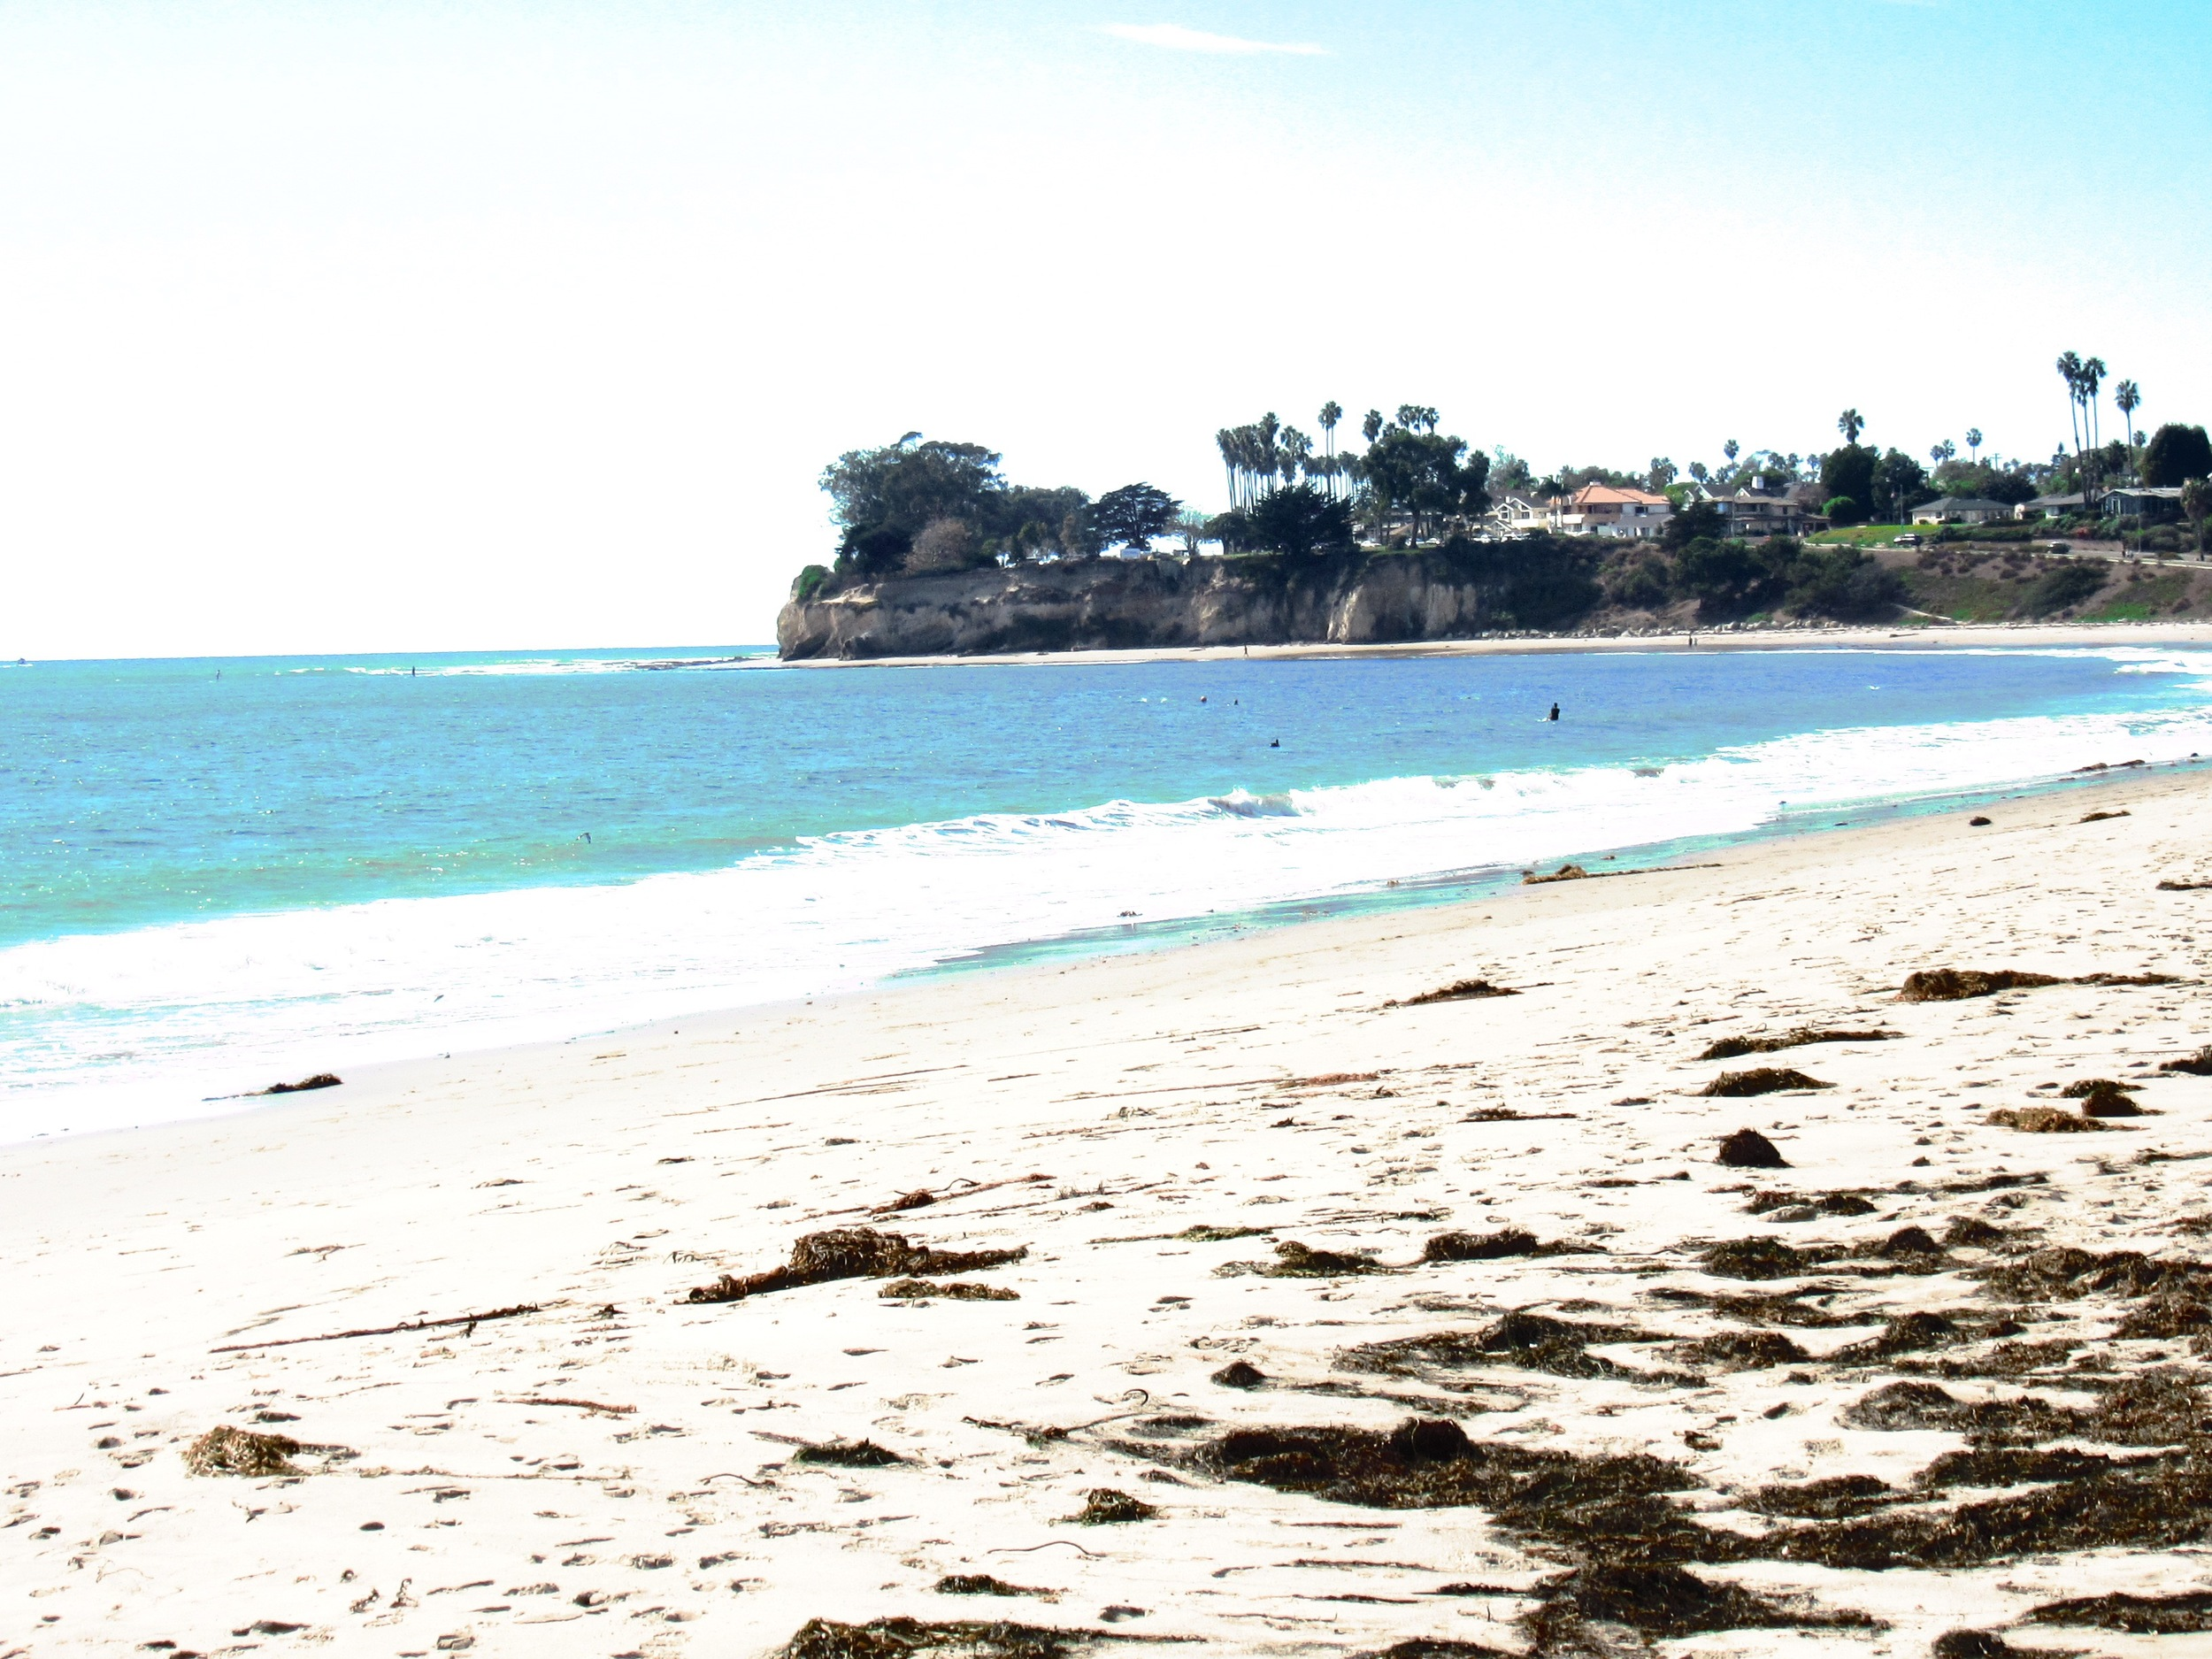 THE THOUGHT OF BEING NEAR THE BEACH WARMS MY HEART, AND IT WAS THE IDEAL LOCATION FOR WHAT I NEEDED.